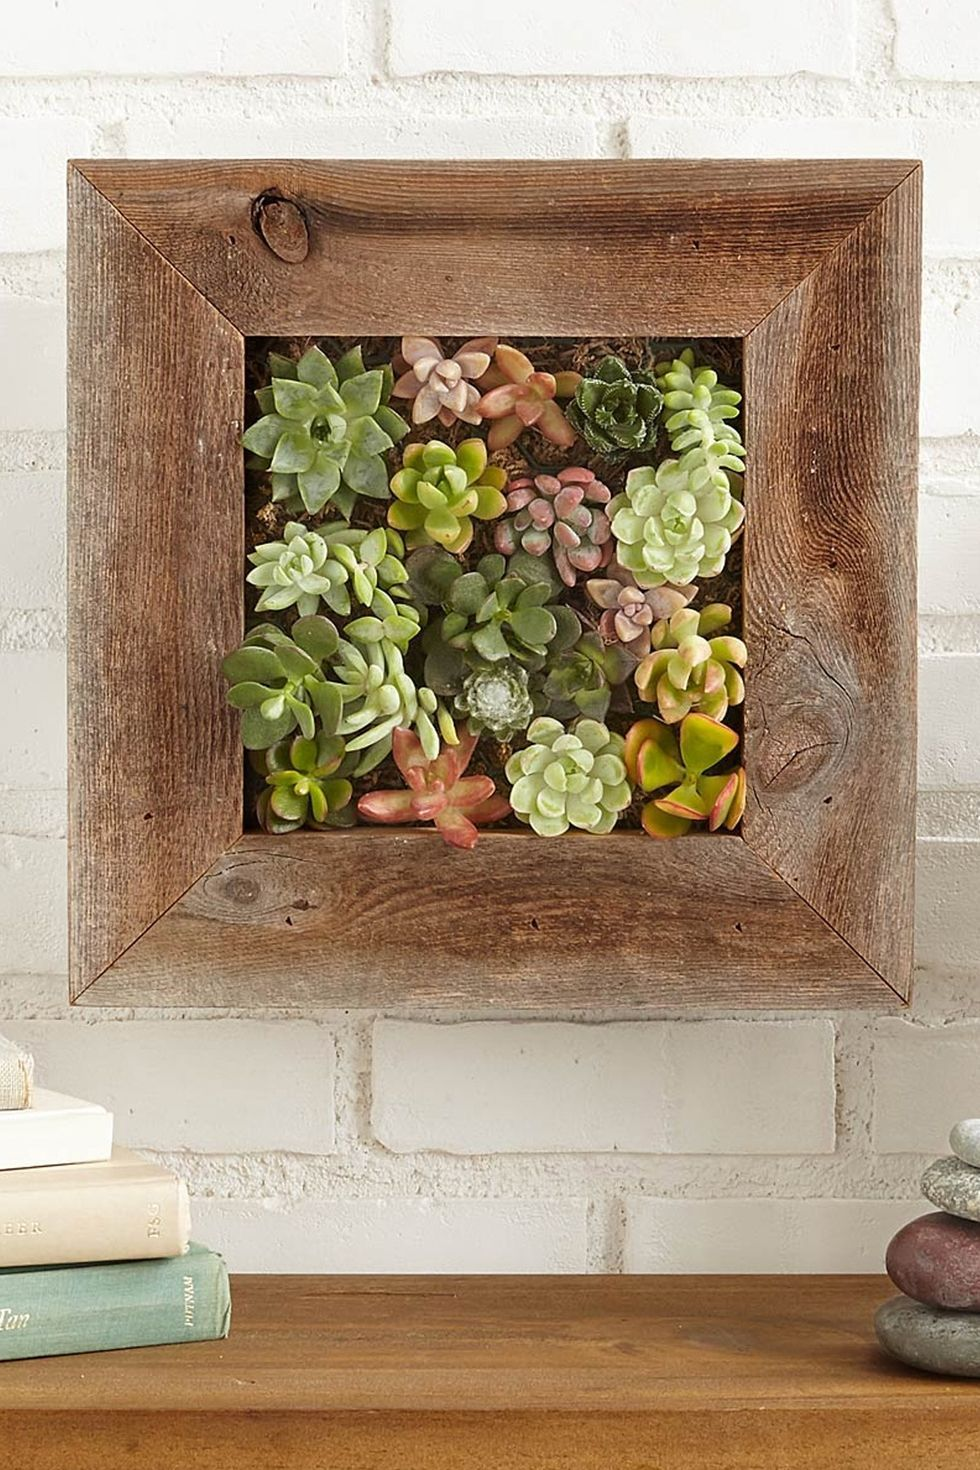 Succulent Living Wall Planter Kit 118 Your Wife Doesn T Have To Have A Green Thumb To Keep This Stunning Displ Garden Gifts Succulents Living Wall Planter Succulent living wall planter kit